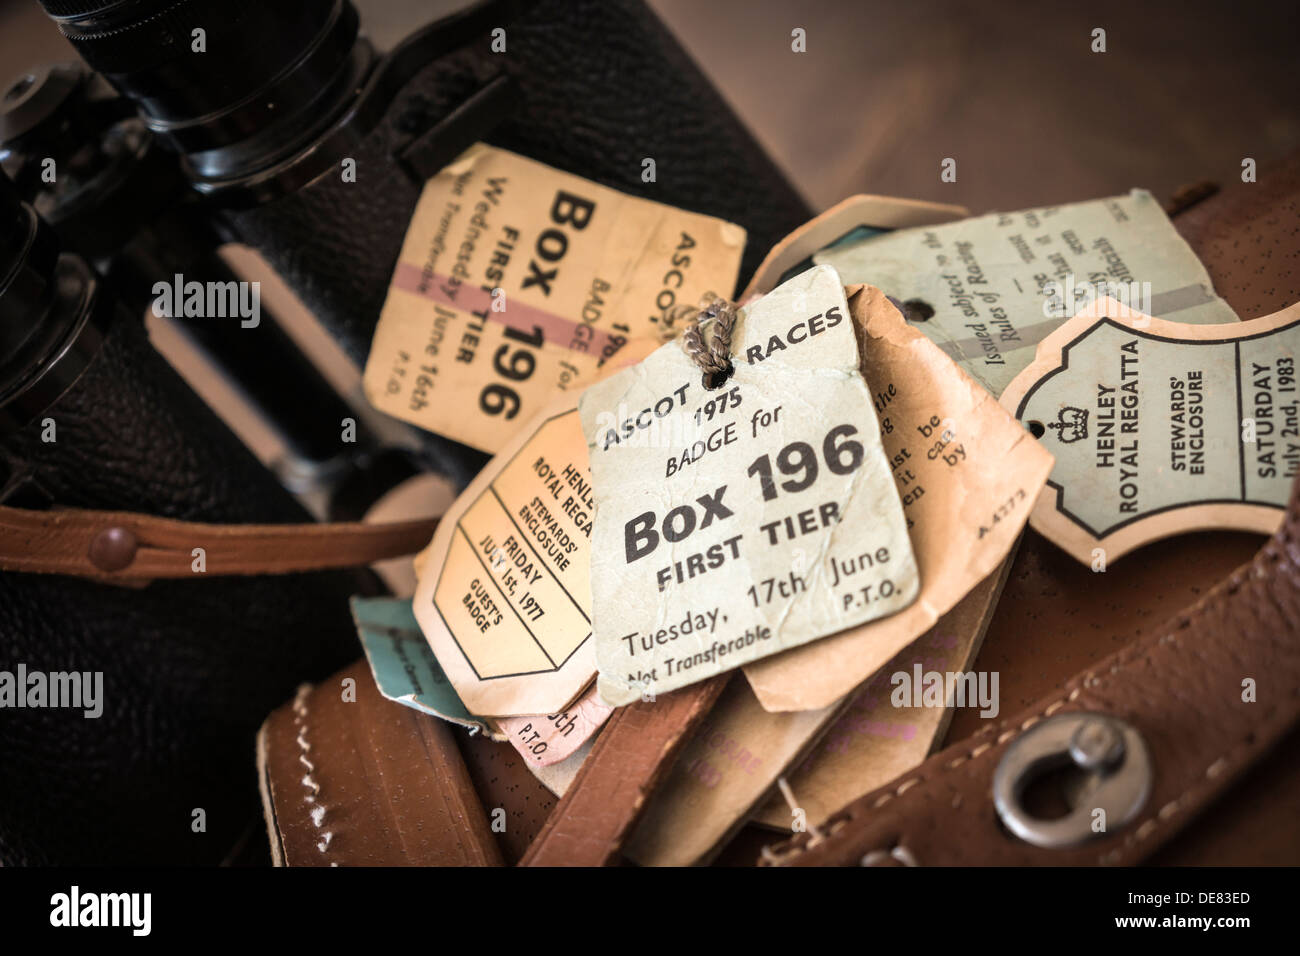 A pair of Binoculars with a leather case display the passes for long forgotten races at Ascot and the Henley Regatta. - Stock Image